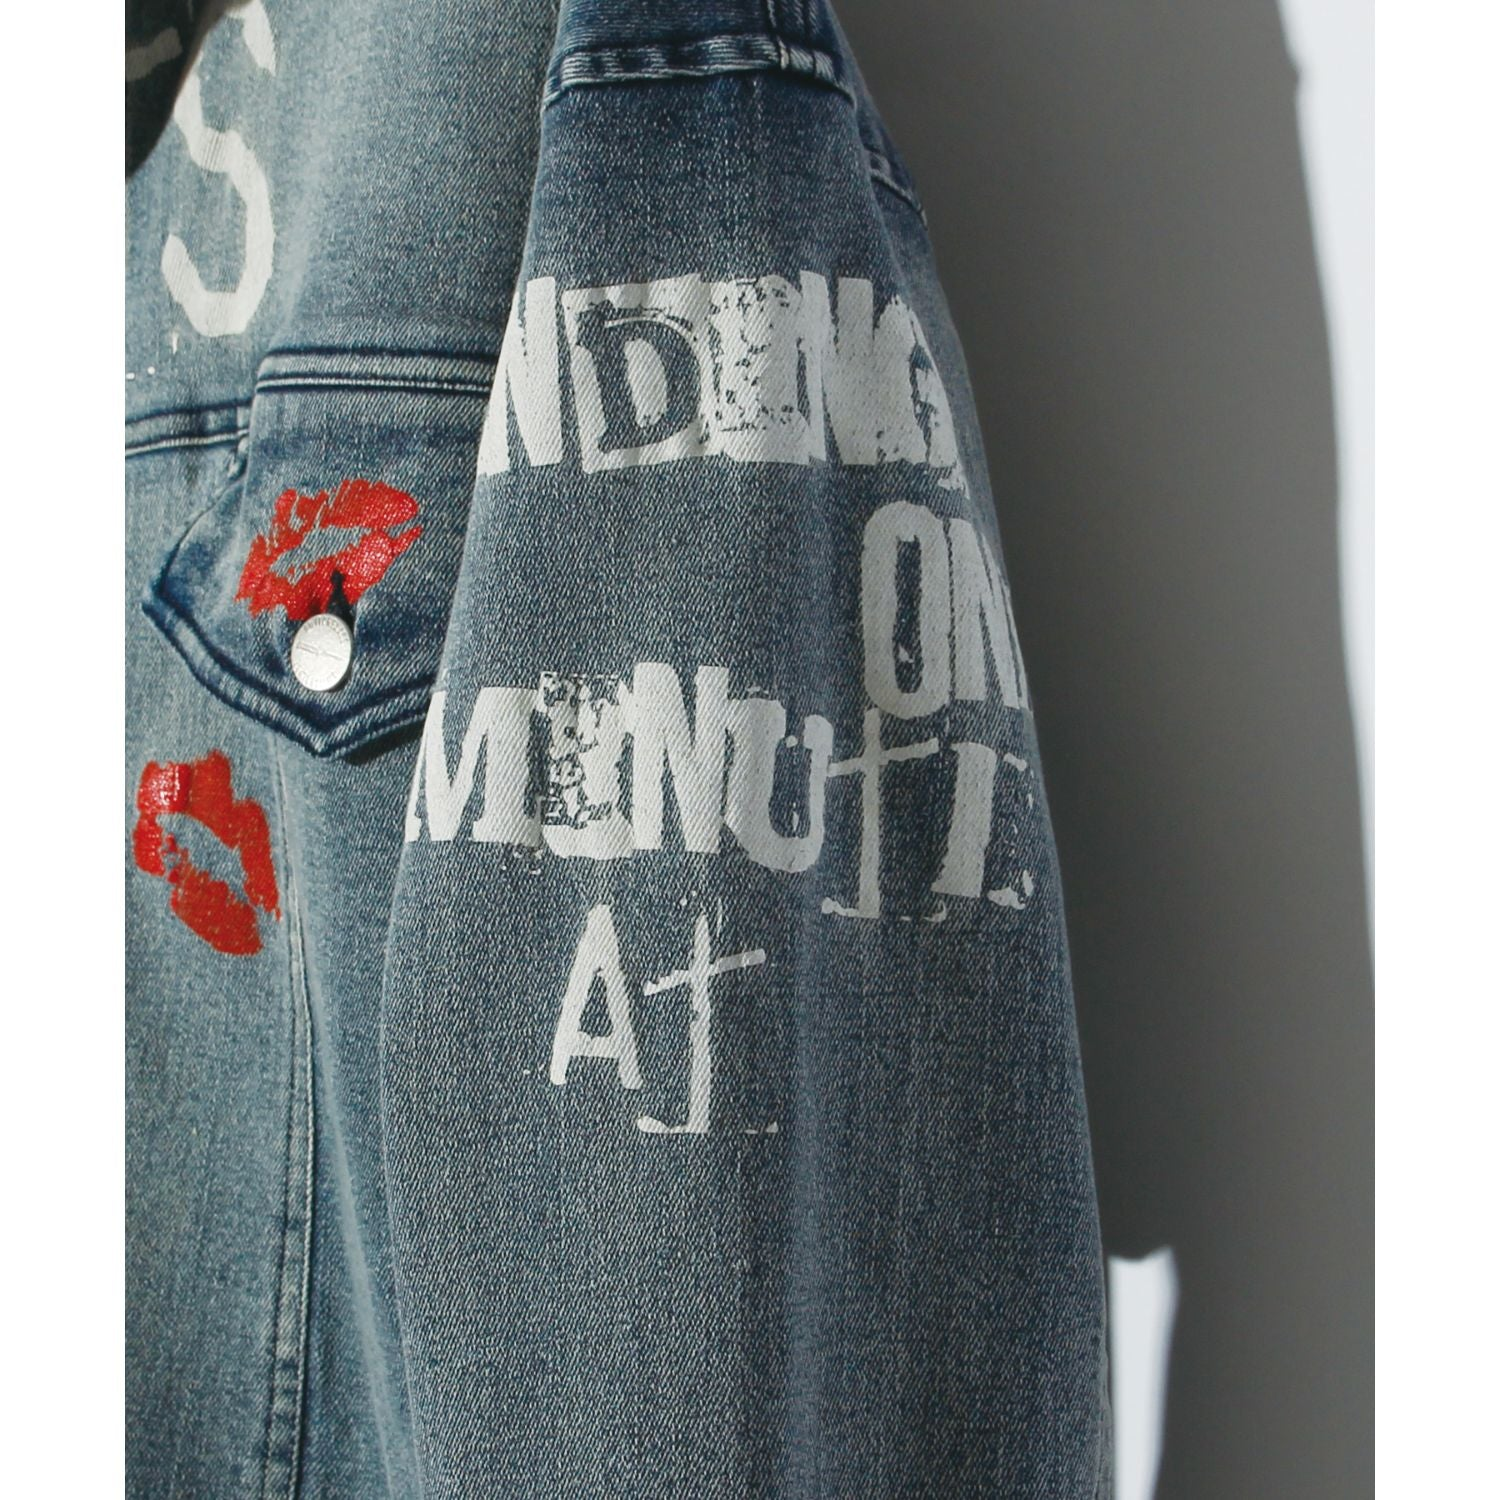 GRAPHIC PRINT DENIM JK / INDIGO